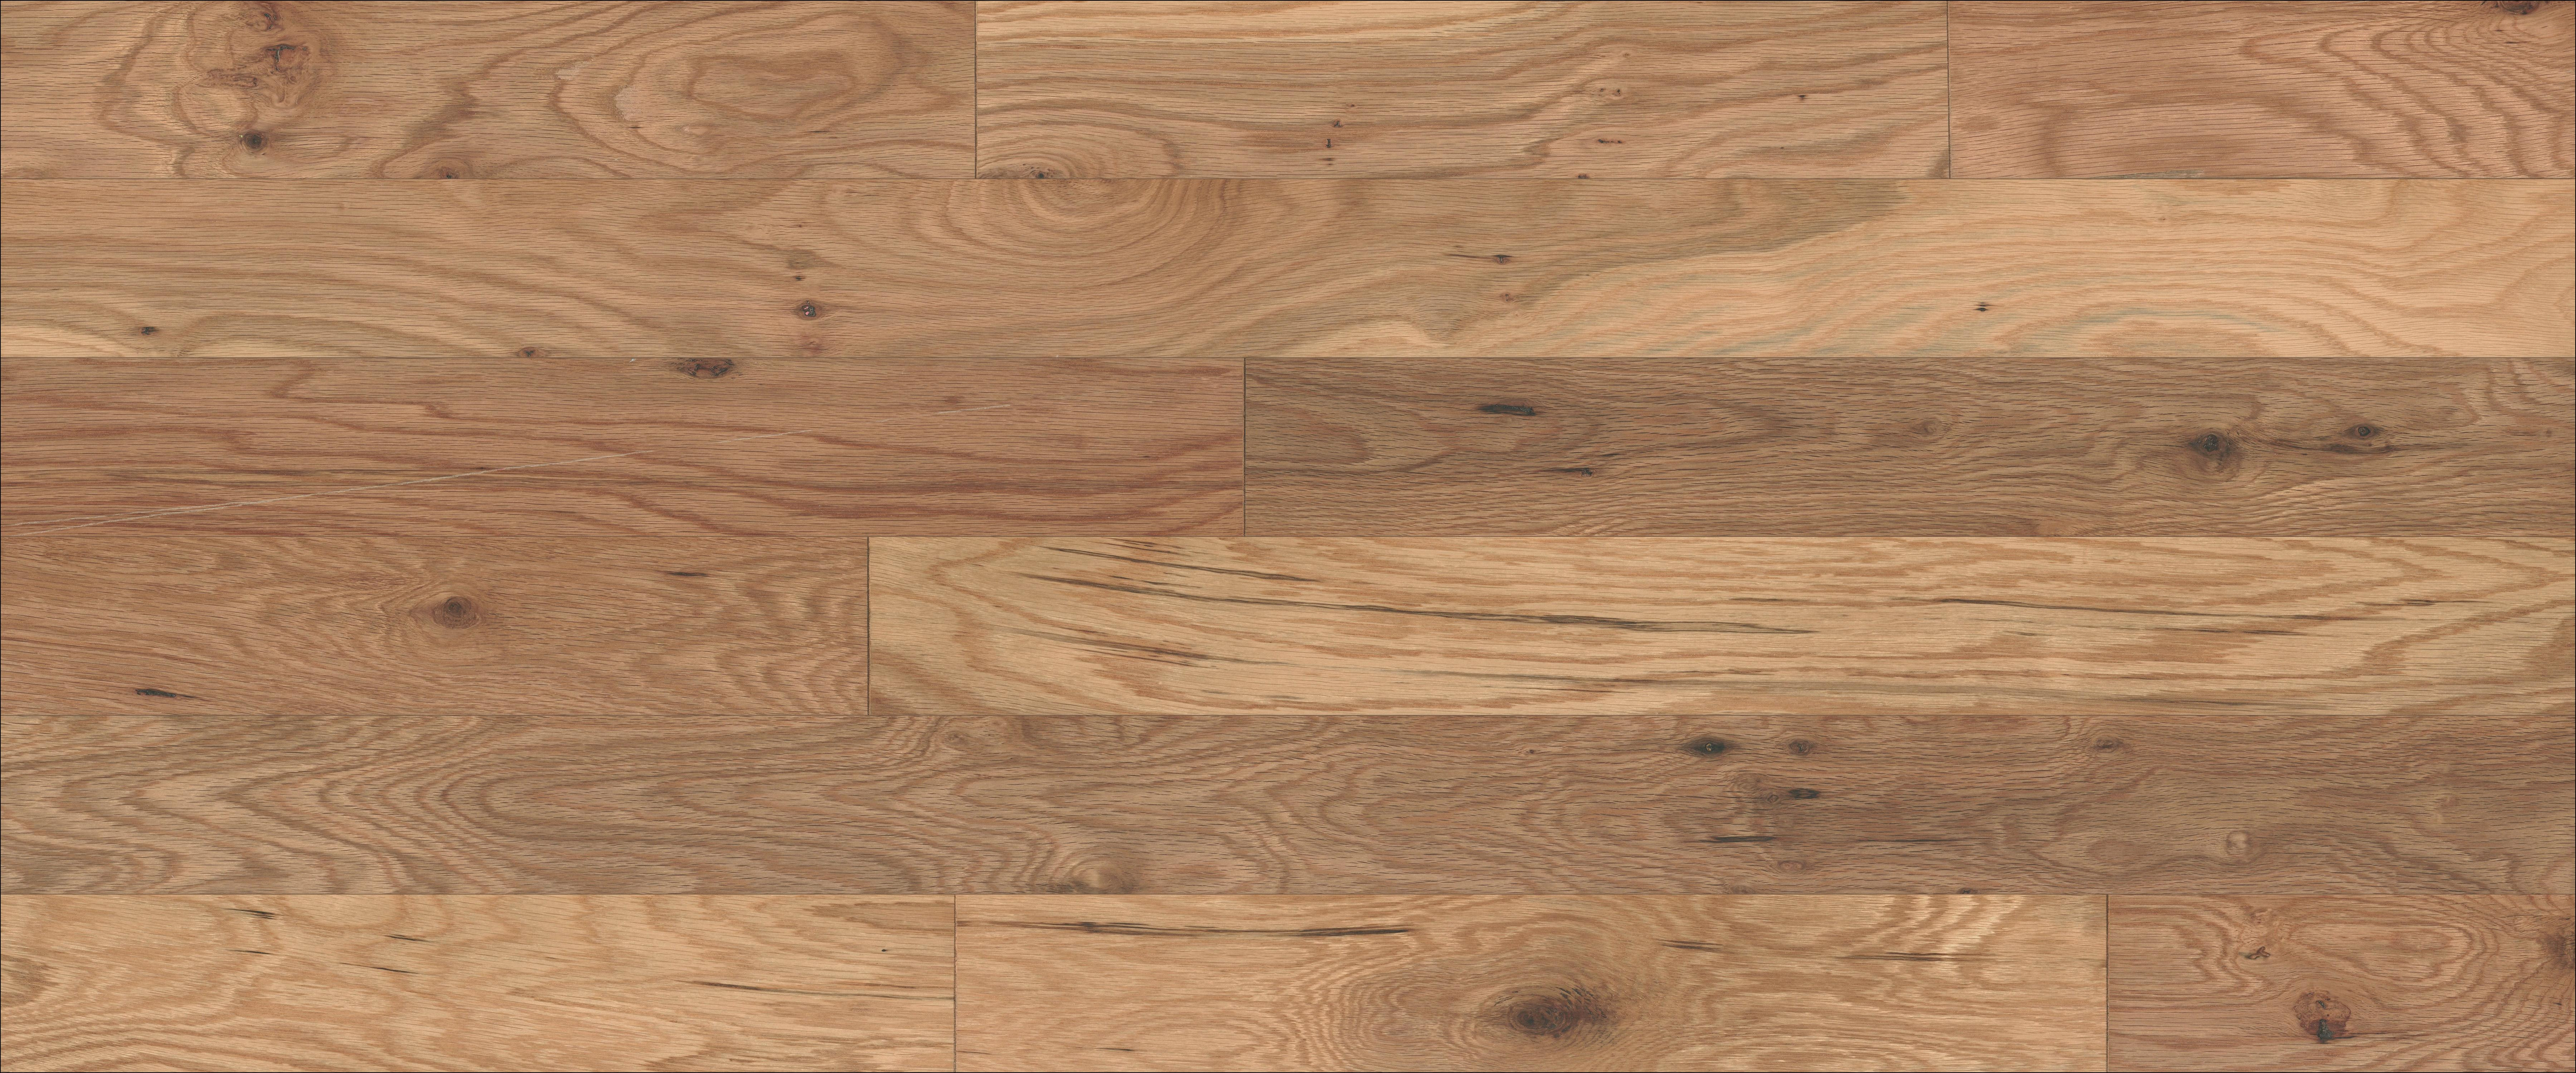 5 wide engineered hardwood flooring of wide plank flooring ideas intended for wide plank white oak wood flooring galerie mullican ridgecrest white oak natural 1 2 thick